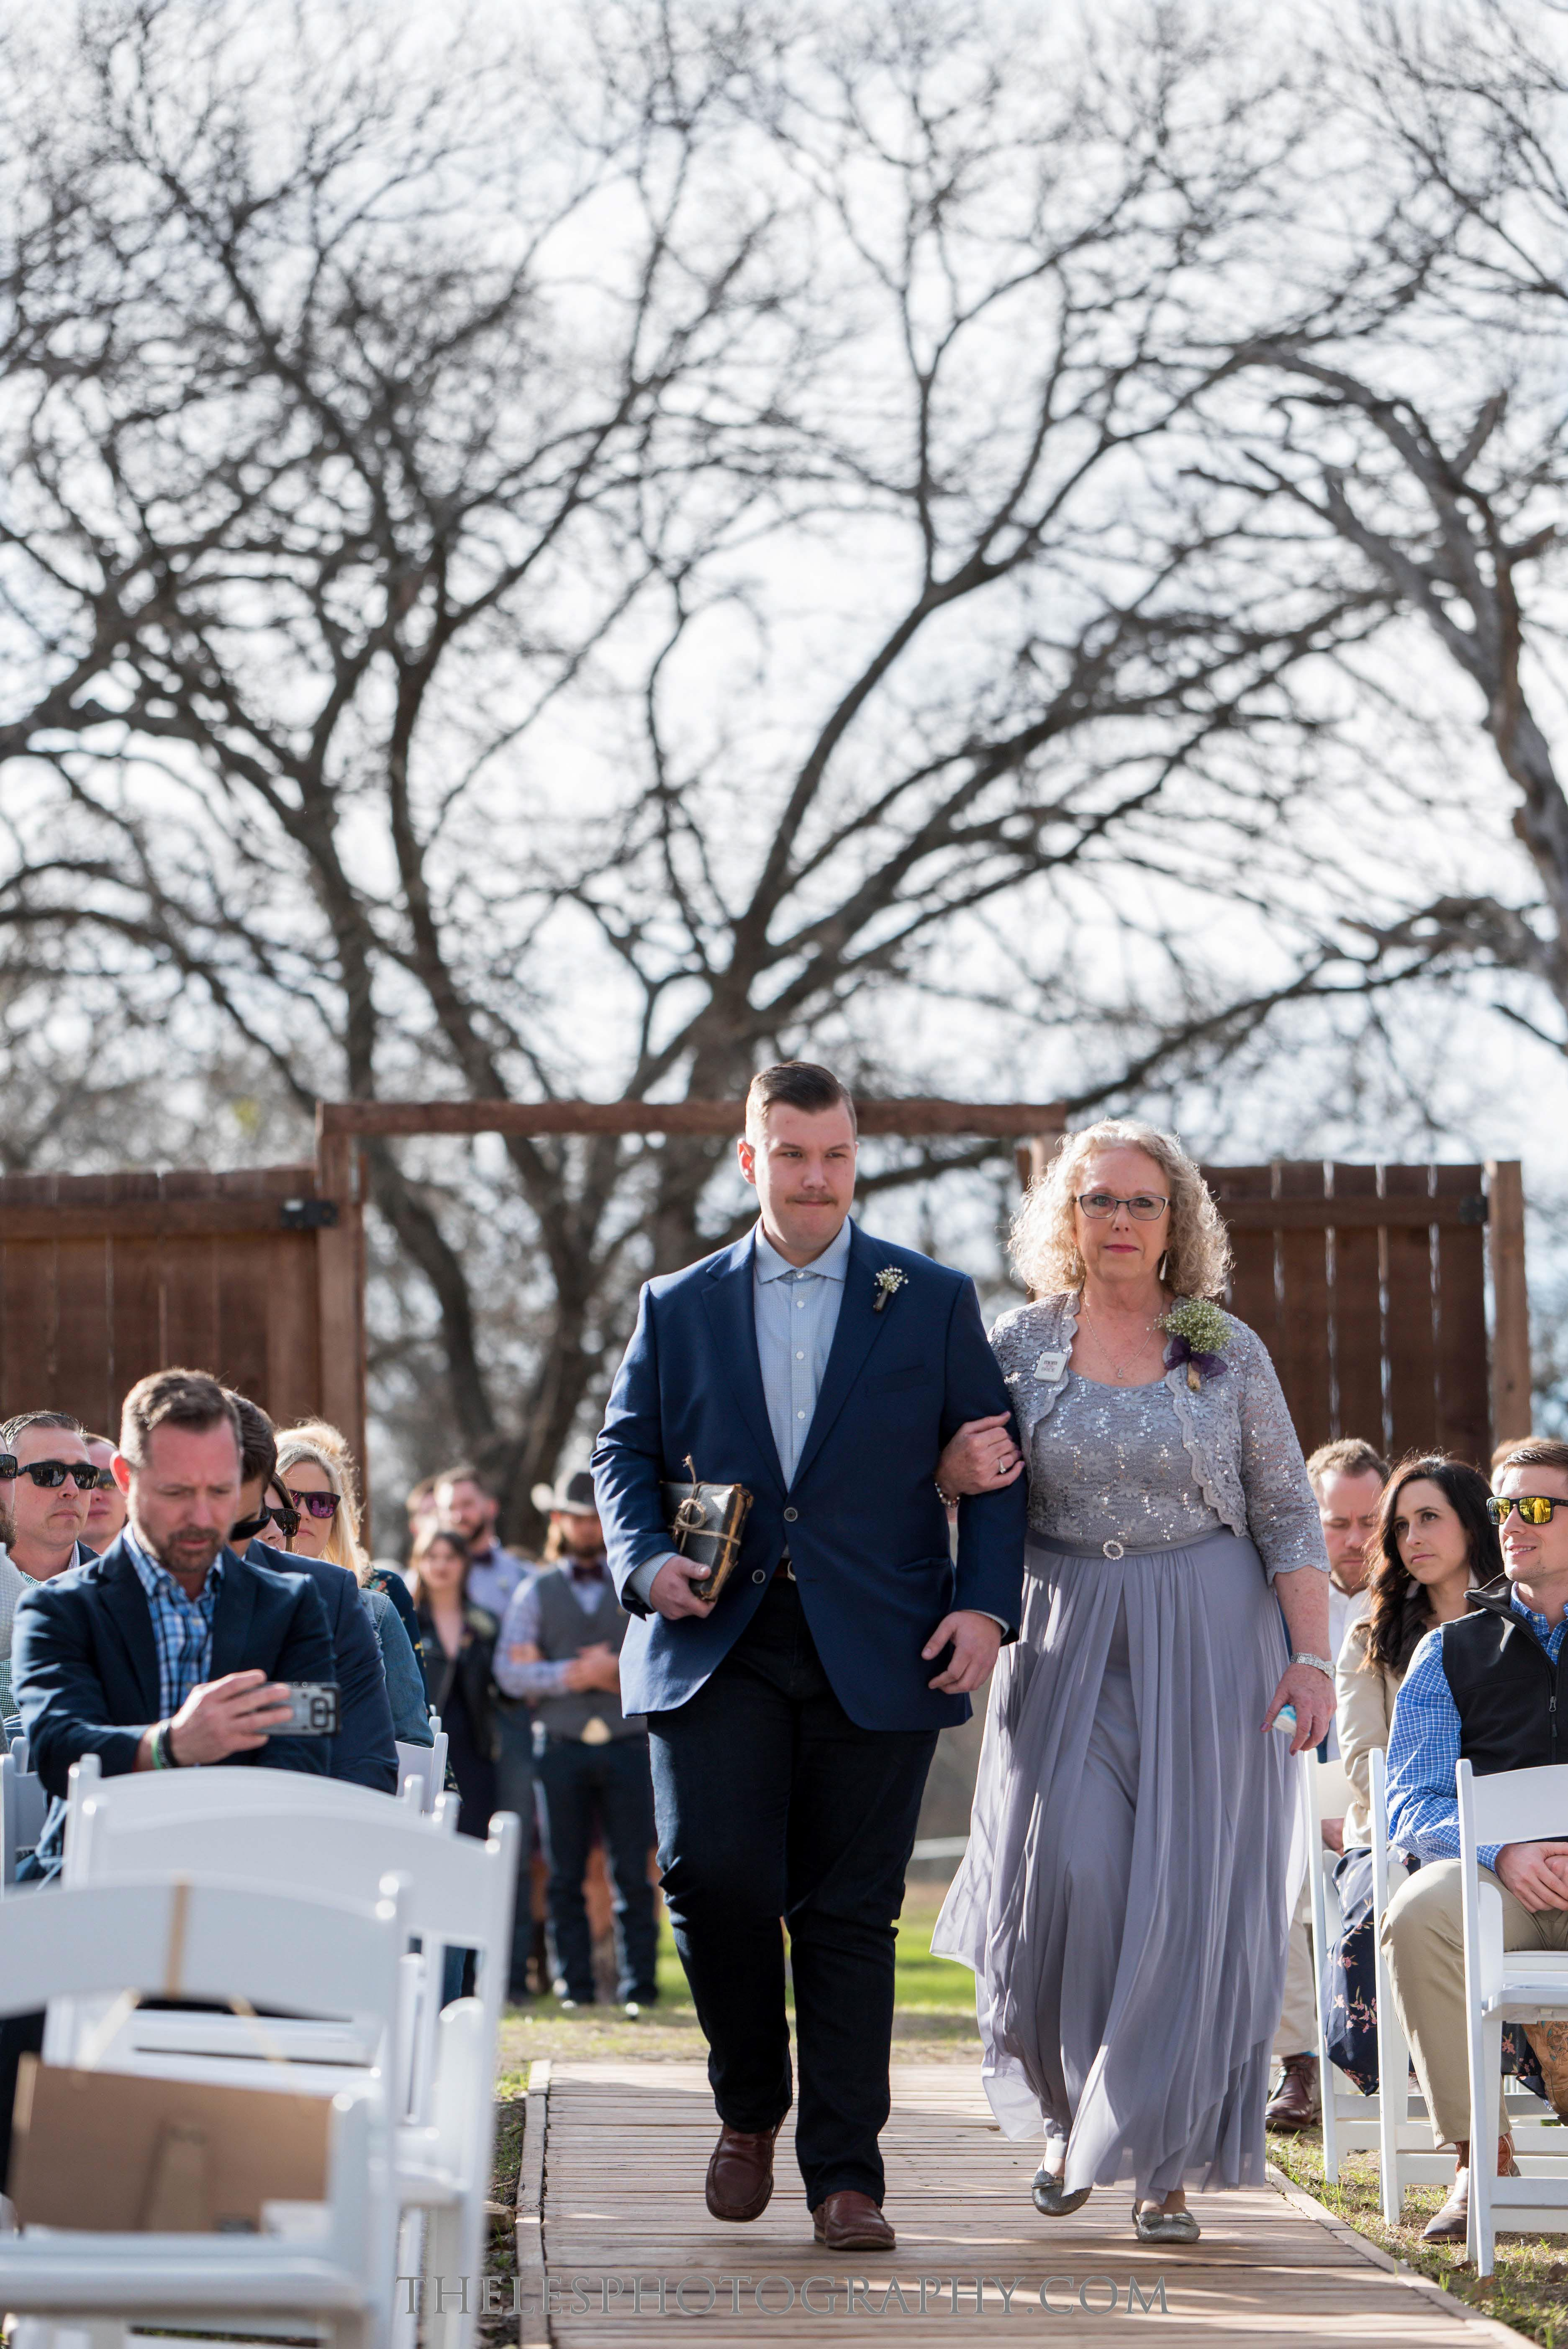 056 Dallas Wedding Photography - Photographer - The Les Photography - Fort Country Memories Wedding